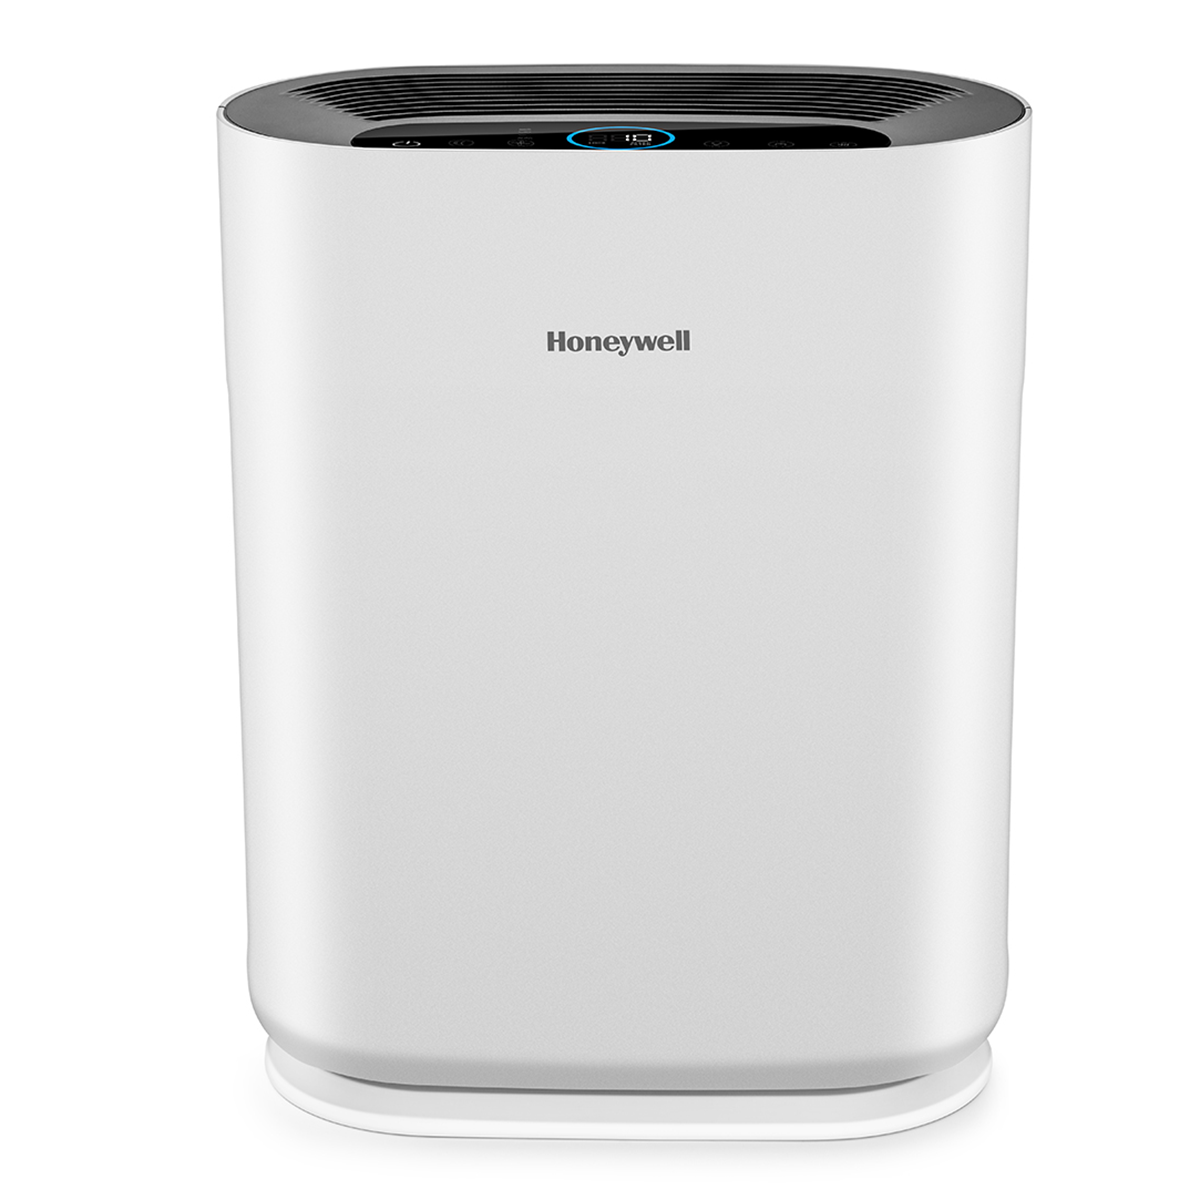 Honeywell High-Efficiency Particulate Arrestant (HEPA) Air Purifier (100% Ozone Free, HC000001/AP/210/WH, White)_1